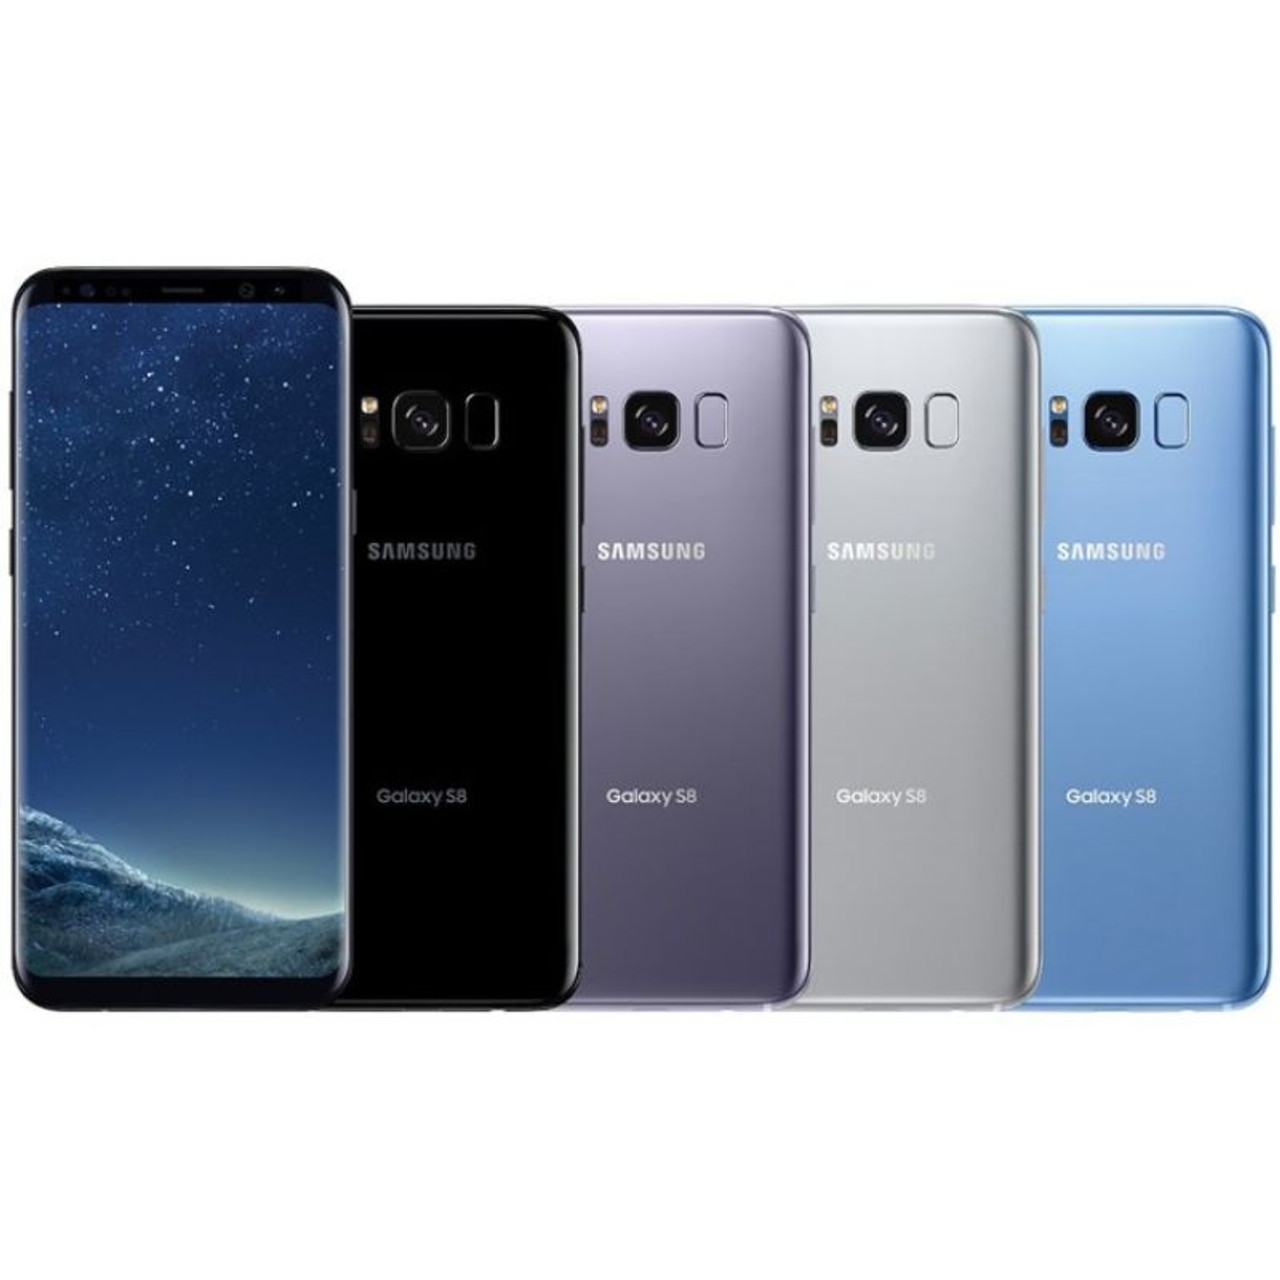 Samsung Galaxy S8 or S8 Plus Fully Unlocked 64 GB Smartphone - Scratch and Dent